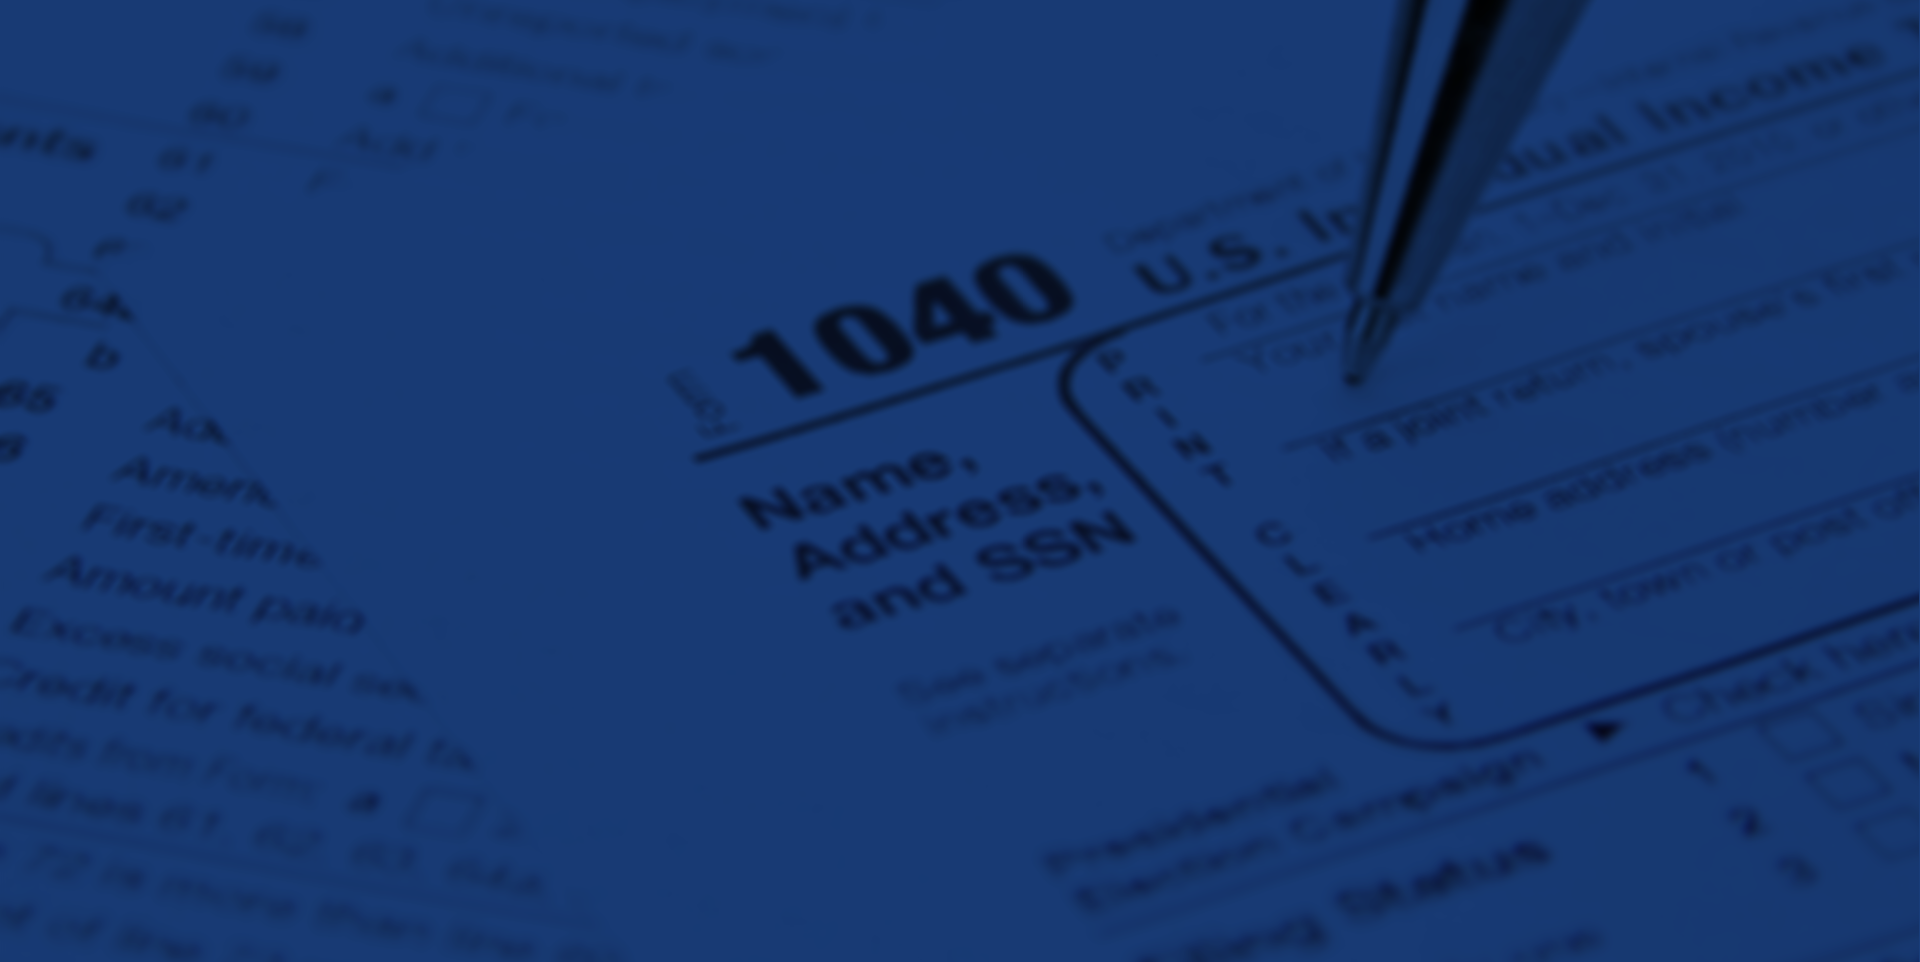 Individual income tax us tax return form 1040 us tax service report of income tax falaconquin